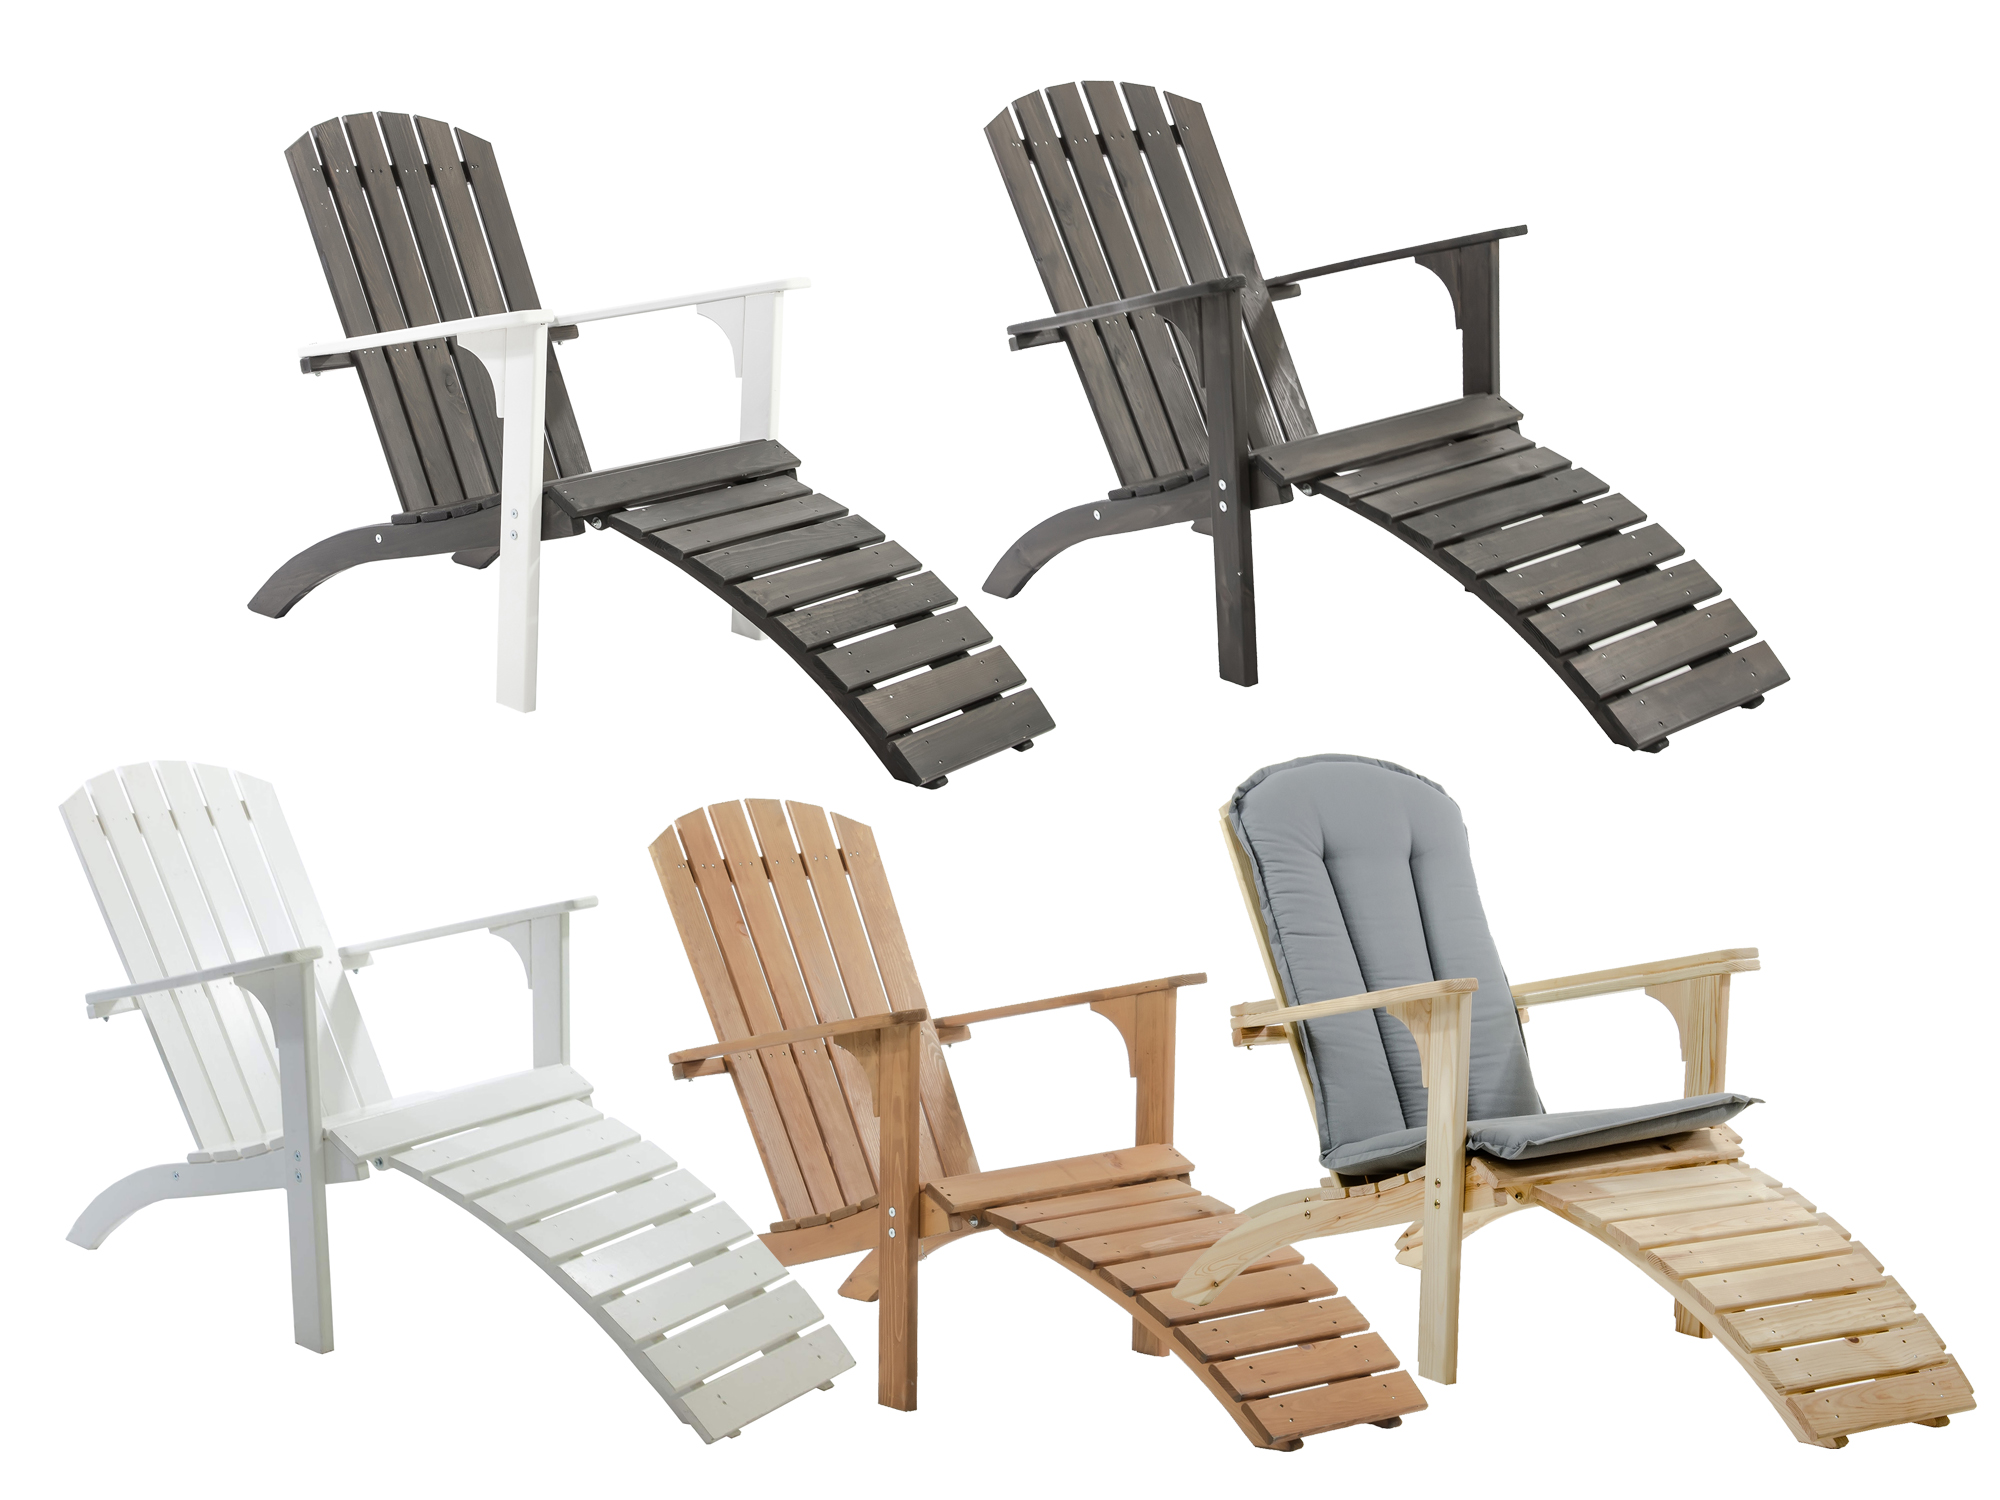 adirondack chair stuhl deckchair wei braun taupe gartenstuhl mit fu teil liege ebay. Black Bedroom Furniture Sets. Home Design Ideas